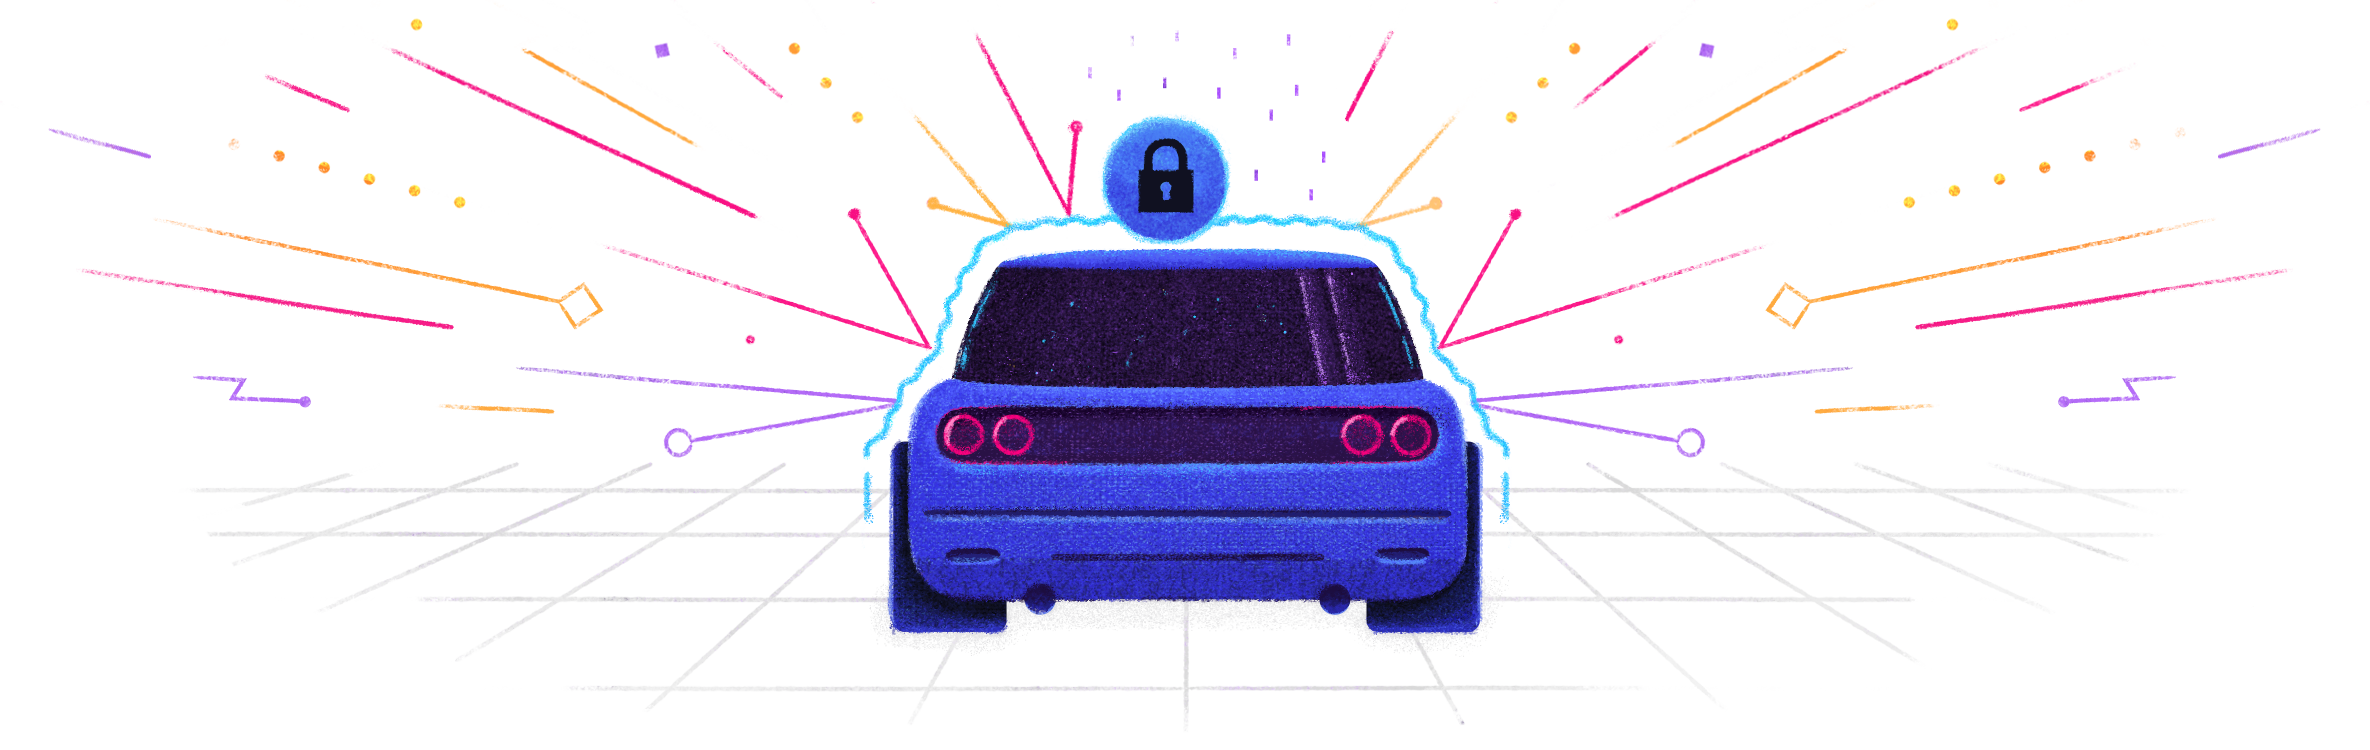 Illustration of a car protected by identity management